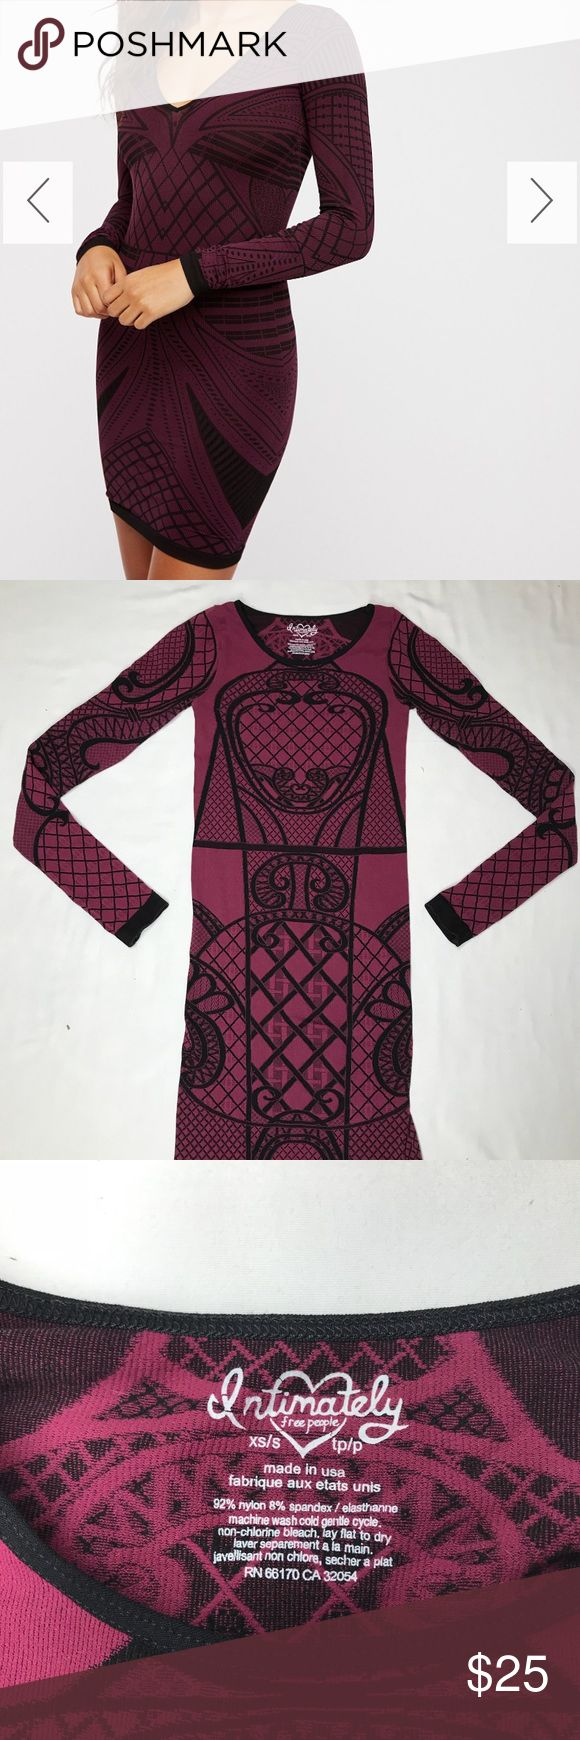 Intimately Free People BodyCon Dress XS/S Maroon Super Sexy bodycon Intimately Free People Dress, Size XS/S. Get revenge on that asshole who dumped you by wearing this to a mutual friend's Holiday party. Would also make a great dress for showing off your sick gains since you started Crossfit. Like new condition. 92% Nylon/8% Spandex. Made in USA 🇺🇸 Free People Dresses Mini